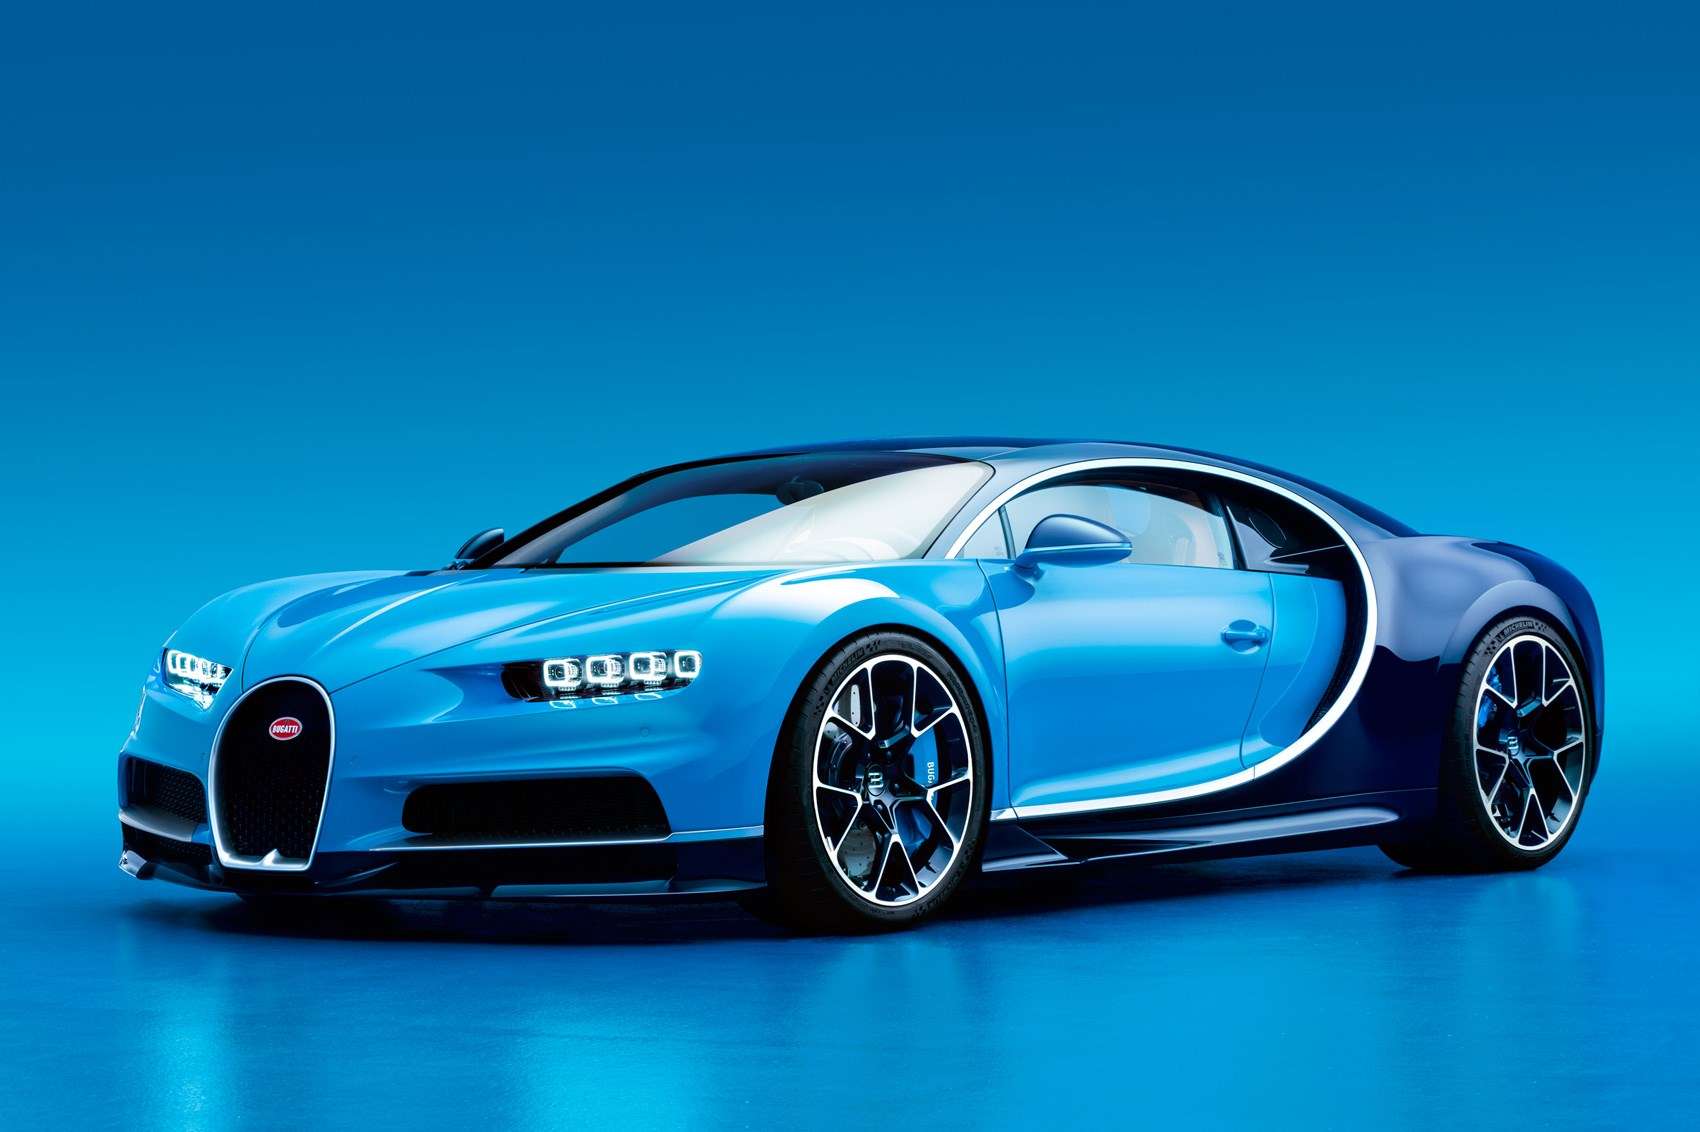 Image result for : http://www.carmagazine.co.uk/car-news/motor-shows-events/geneva/2016/bugatti-chiron-revealed-at-the-2016-geneva-motor-show/